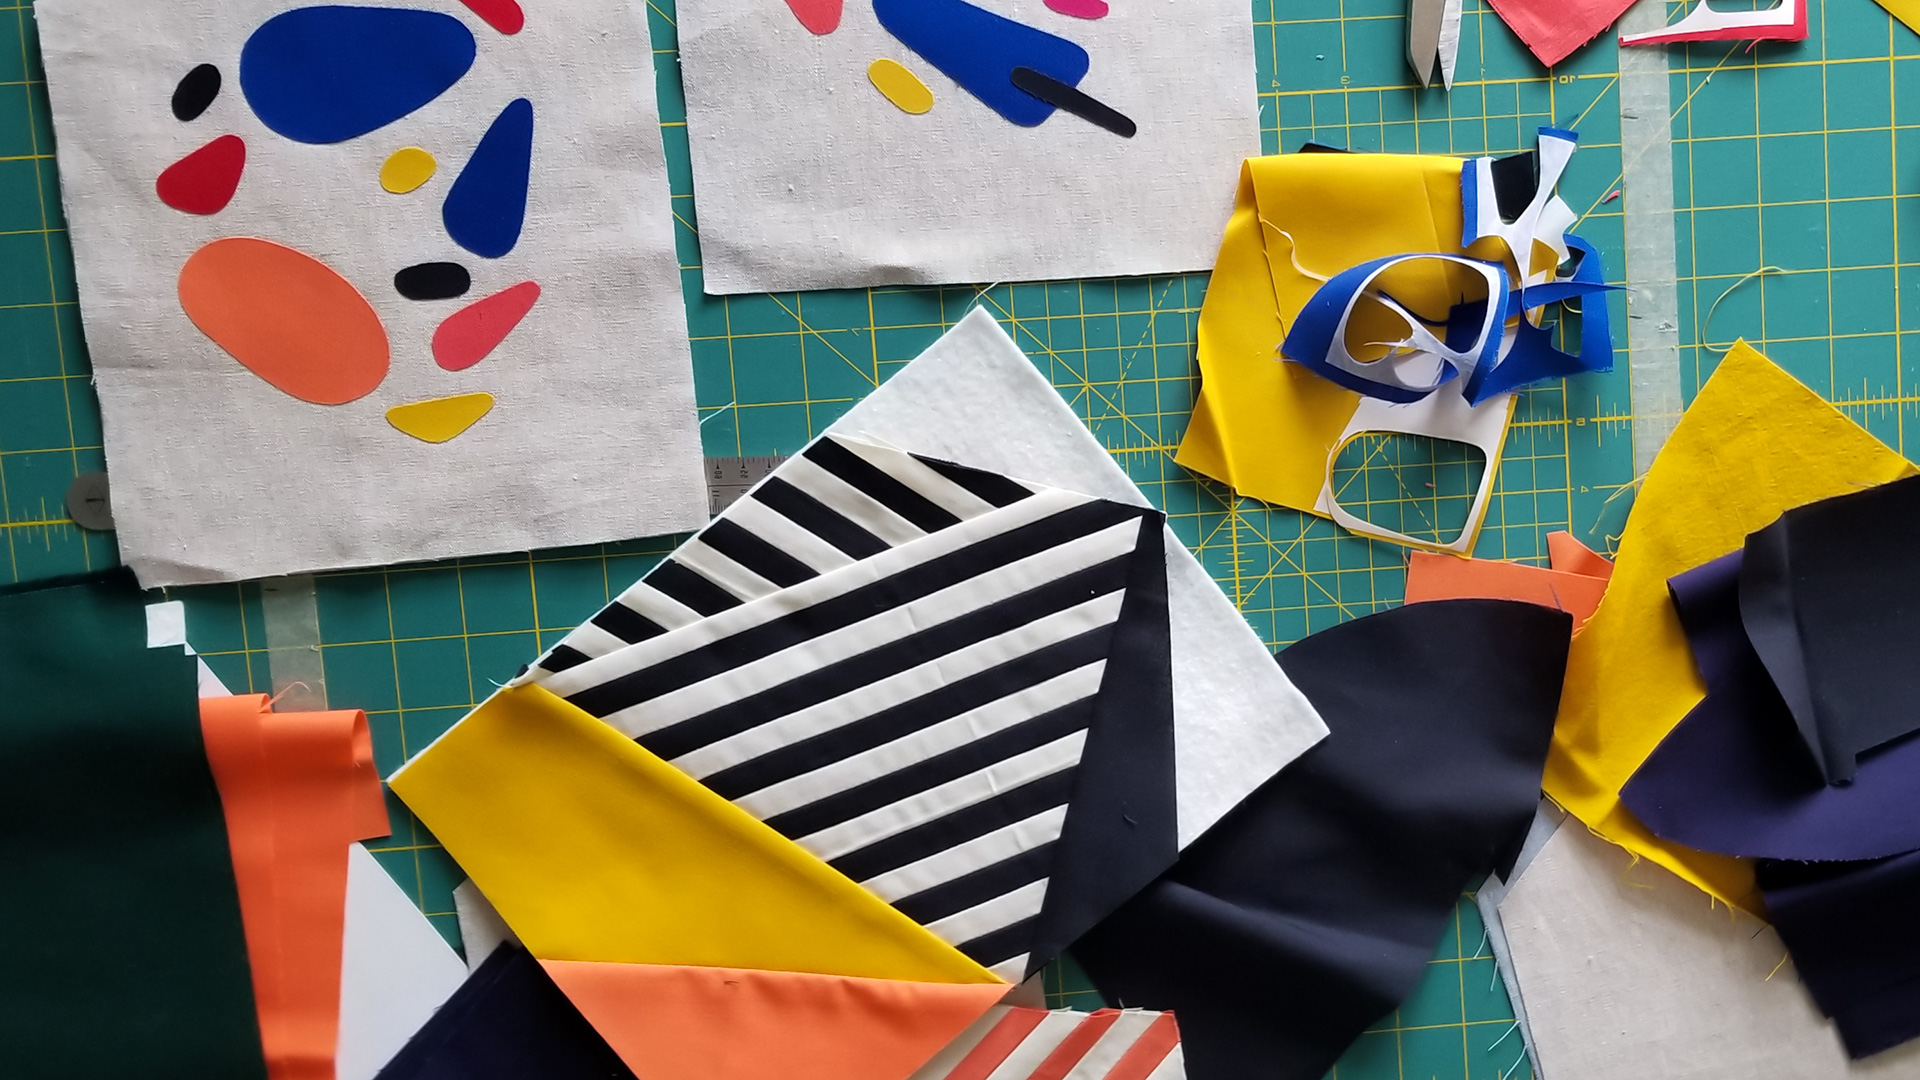 DESIGN CONSULTATION + DEVELOPMENT - Need a soft product prototype? Our professional design services aims to help you through the design process to develop your concept. Services can include: creating paper models, pattern drafting, and creating working prototypes.